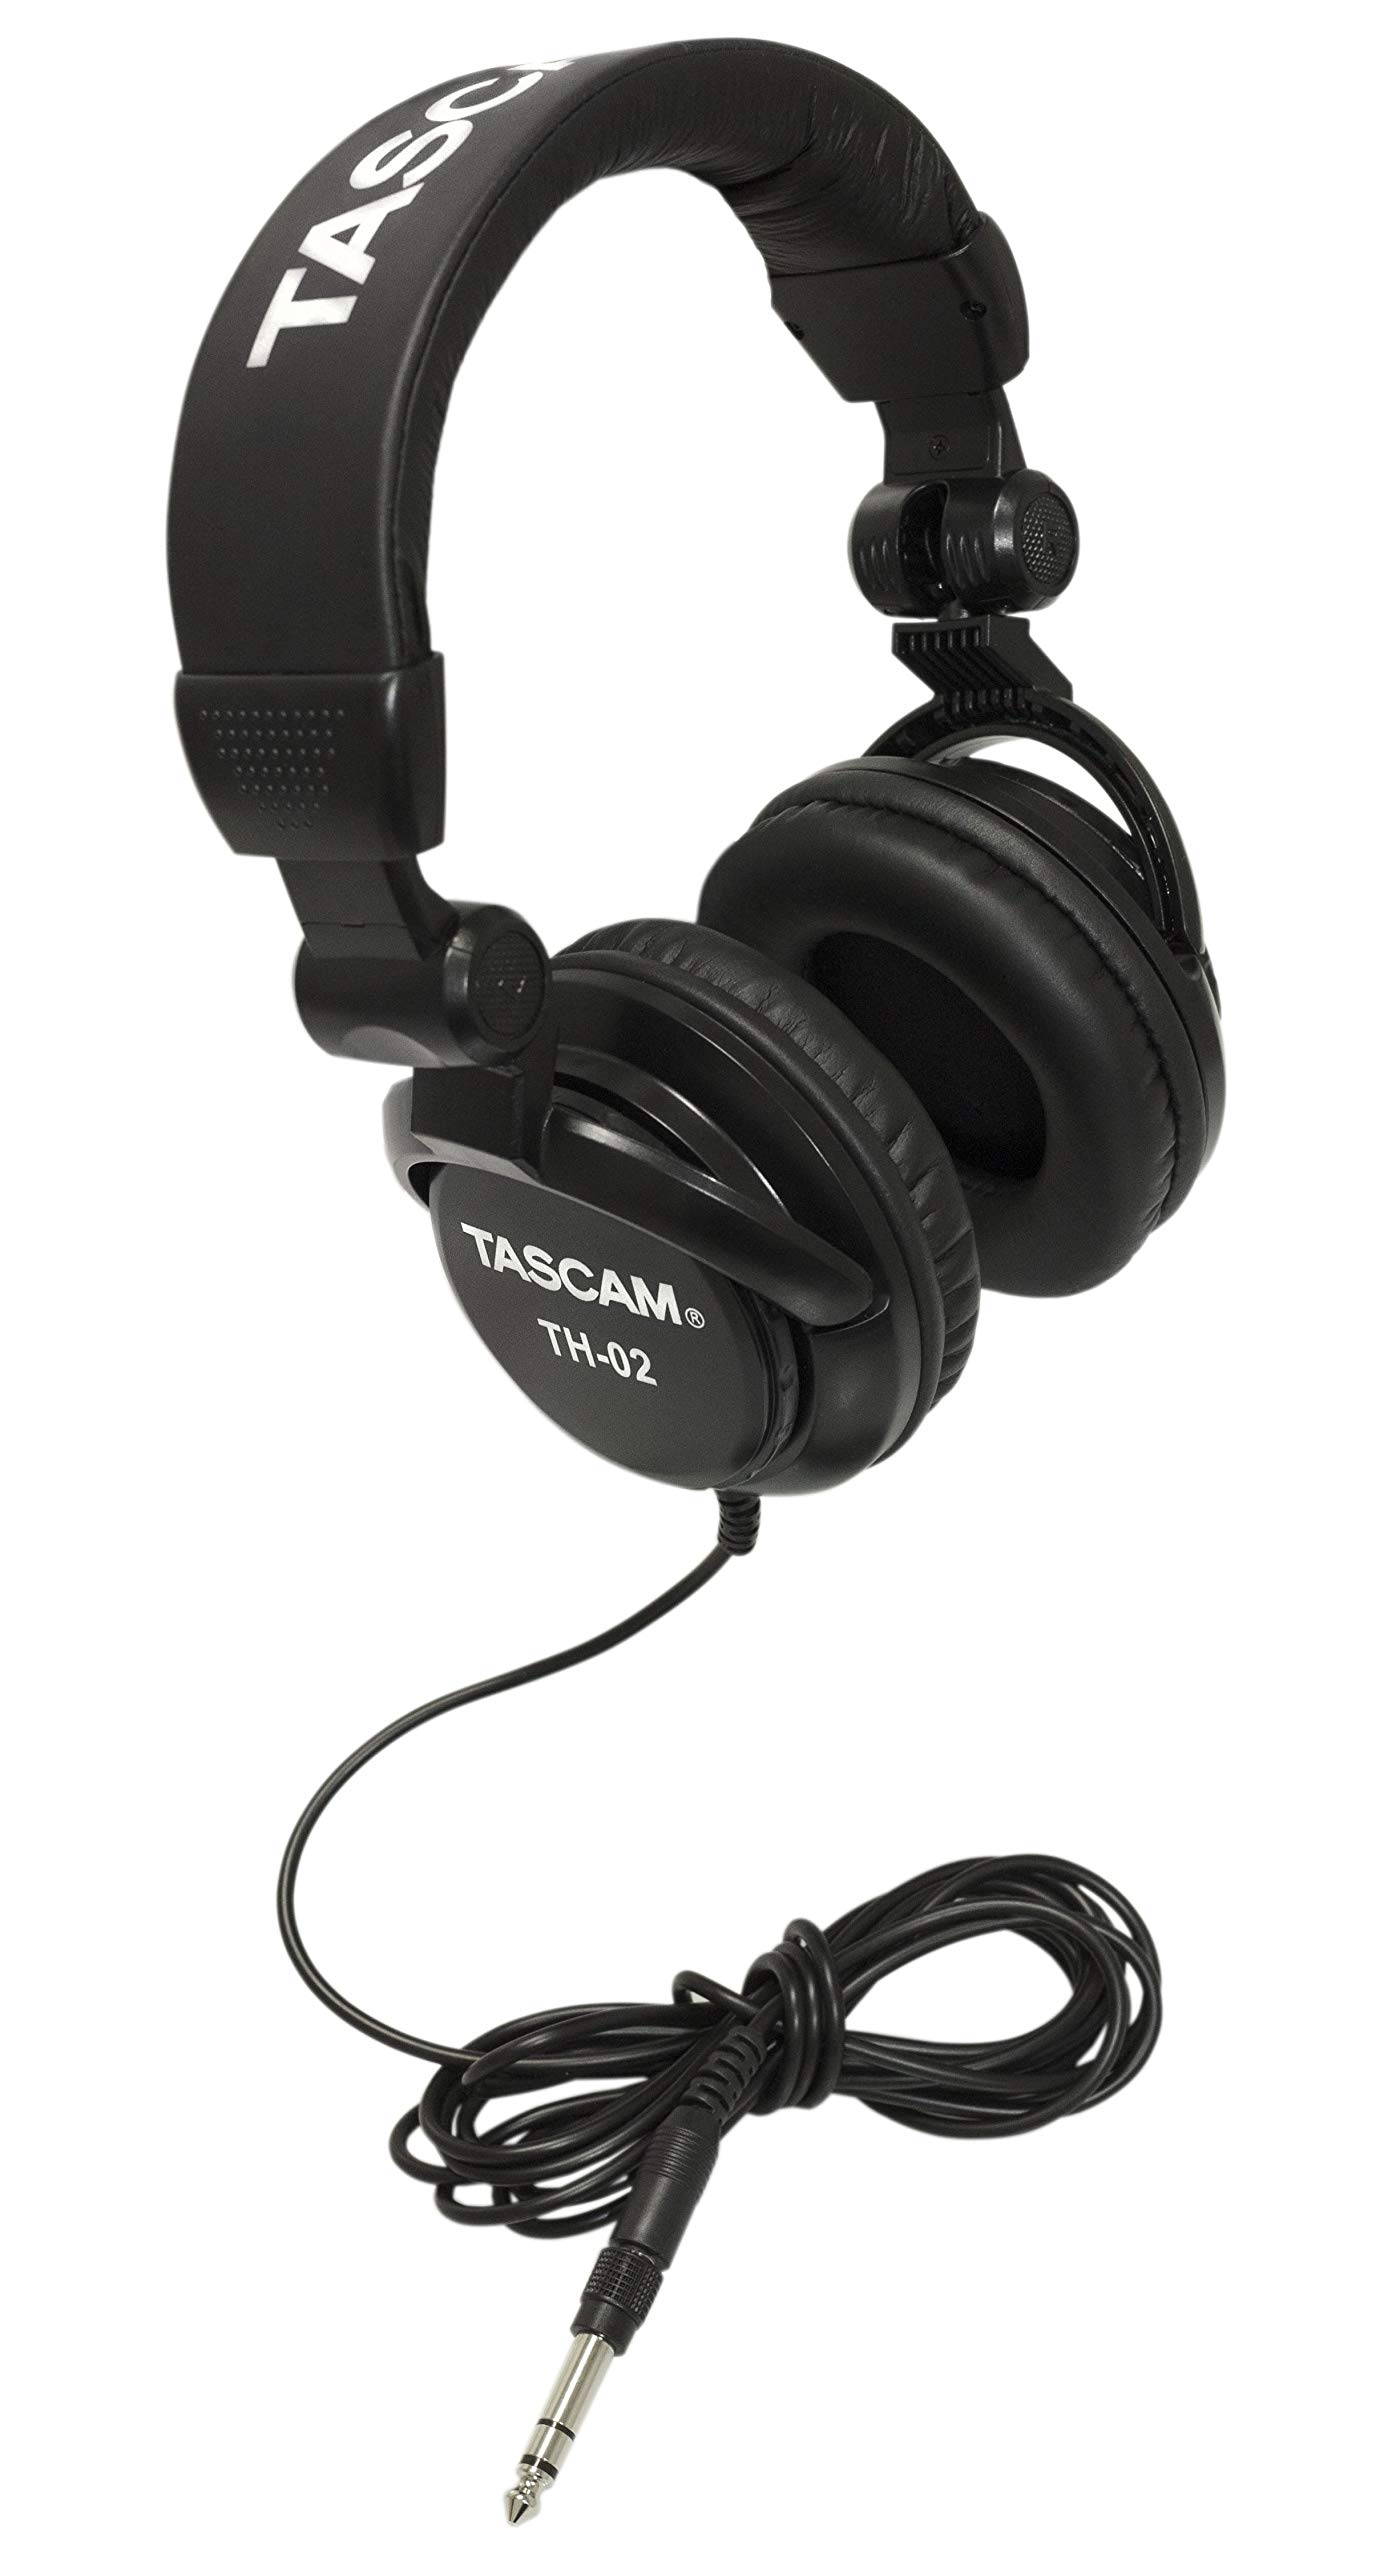 Tascam TH-02 Closed Back Studio Headphones, Black by Tascam